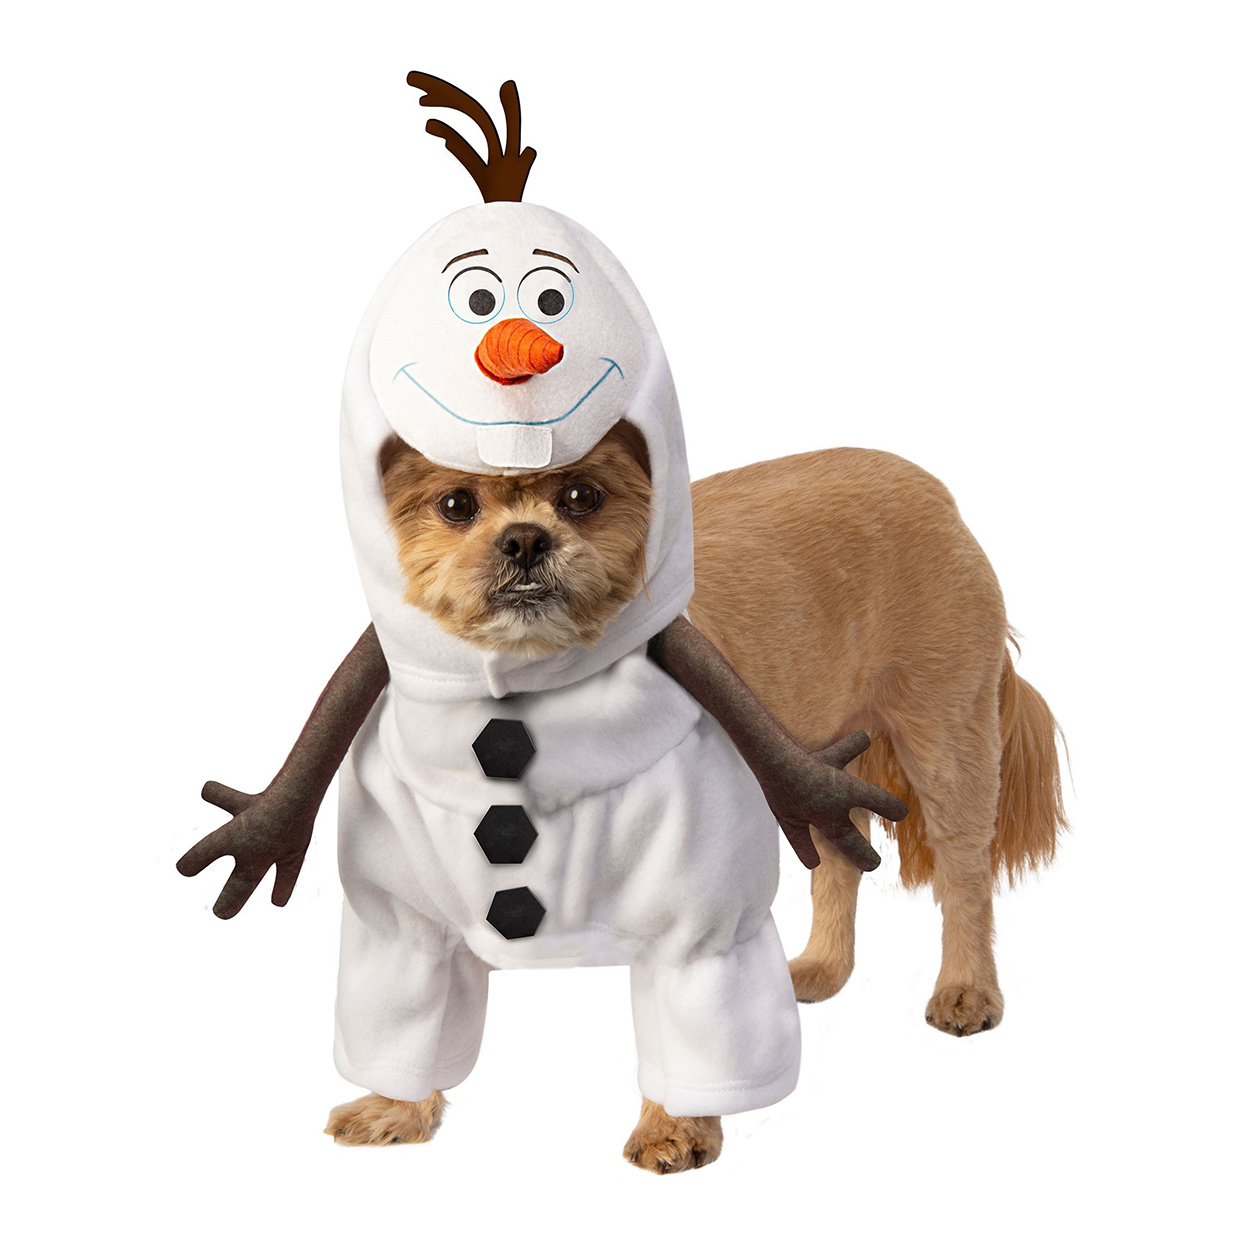 Dog wearing a Frozen Olaf Pet Costume on a white background